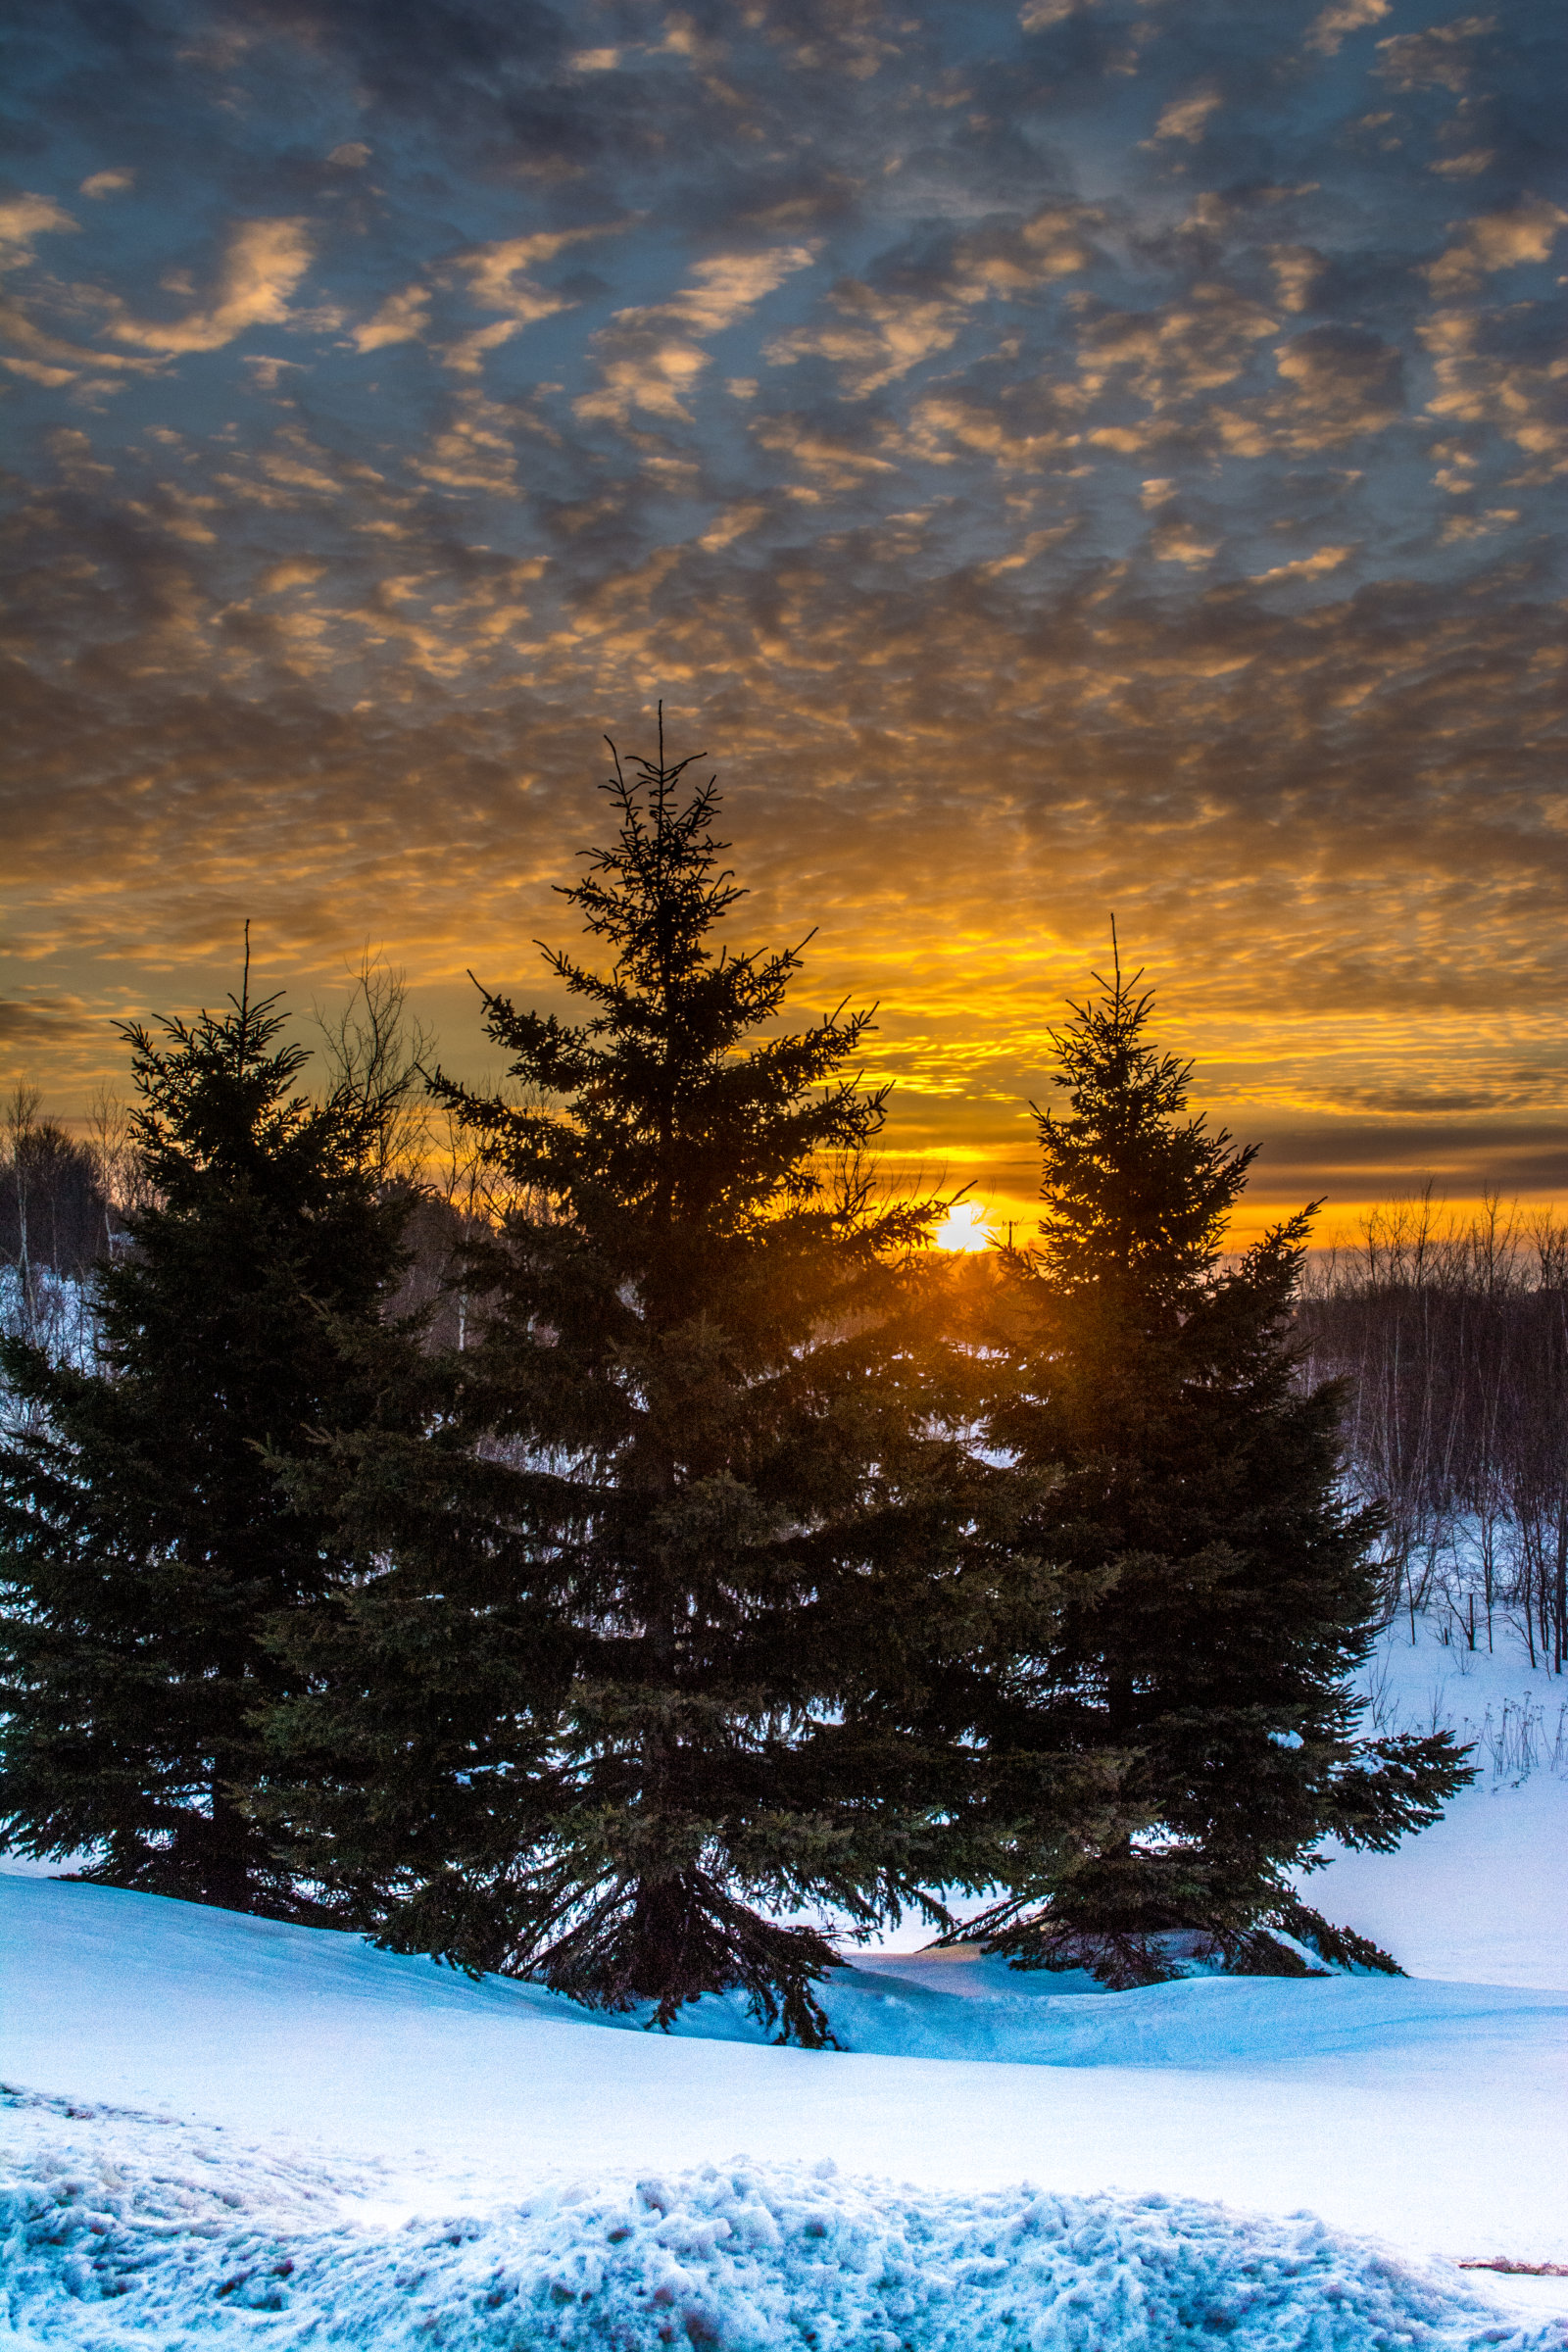 140617 download wallpaper Nature, Trees, Sunset, Snow, Winter, Landscape, Fir-Trees screensavers and pictures for free